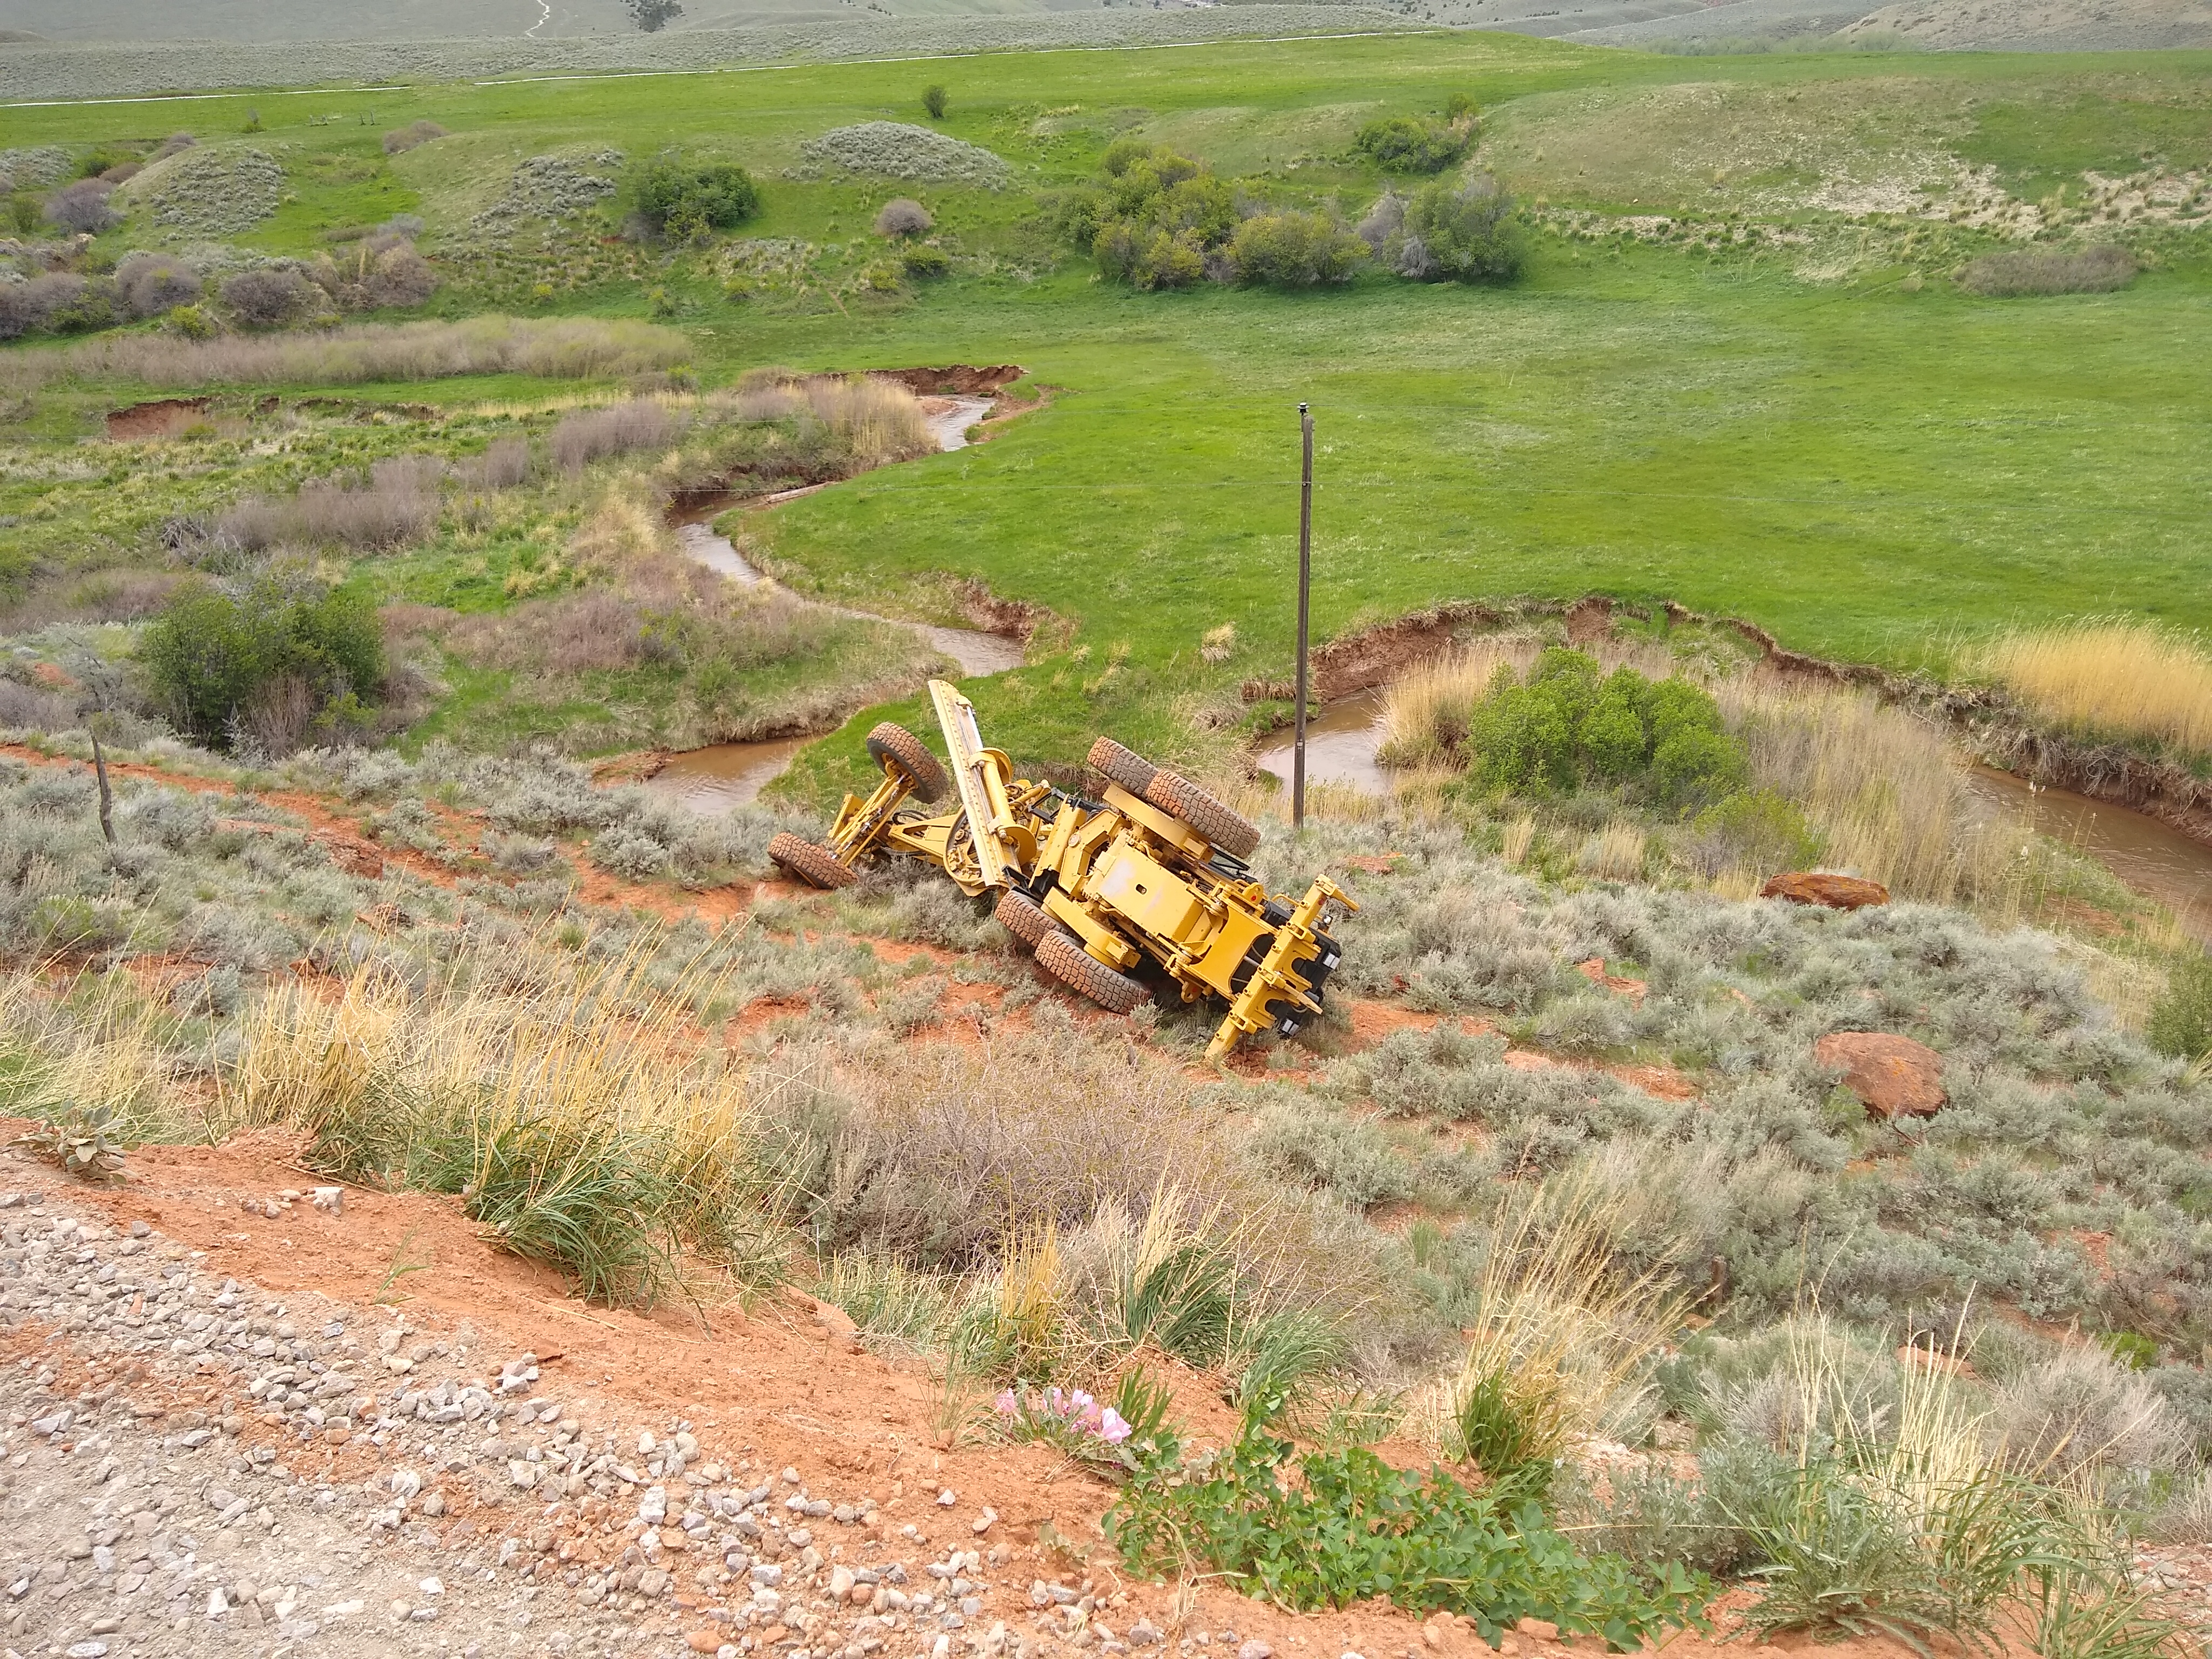 A Fremont County Road Grader rolled into ravine at Red Canyon Wednesday